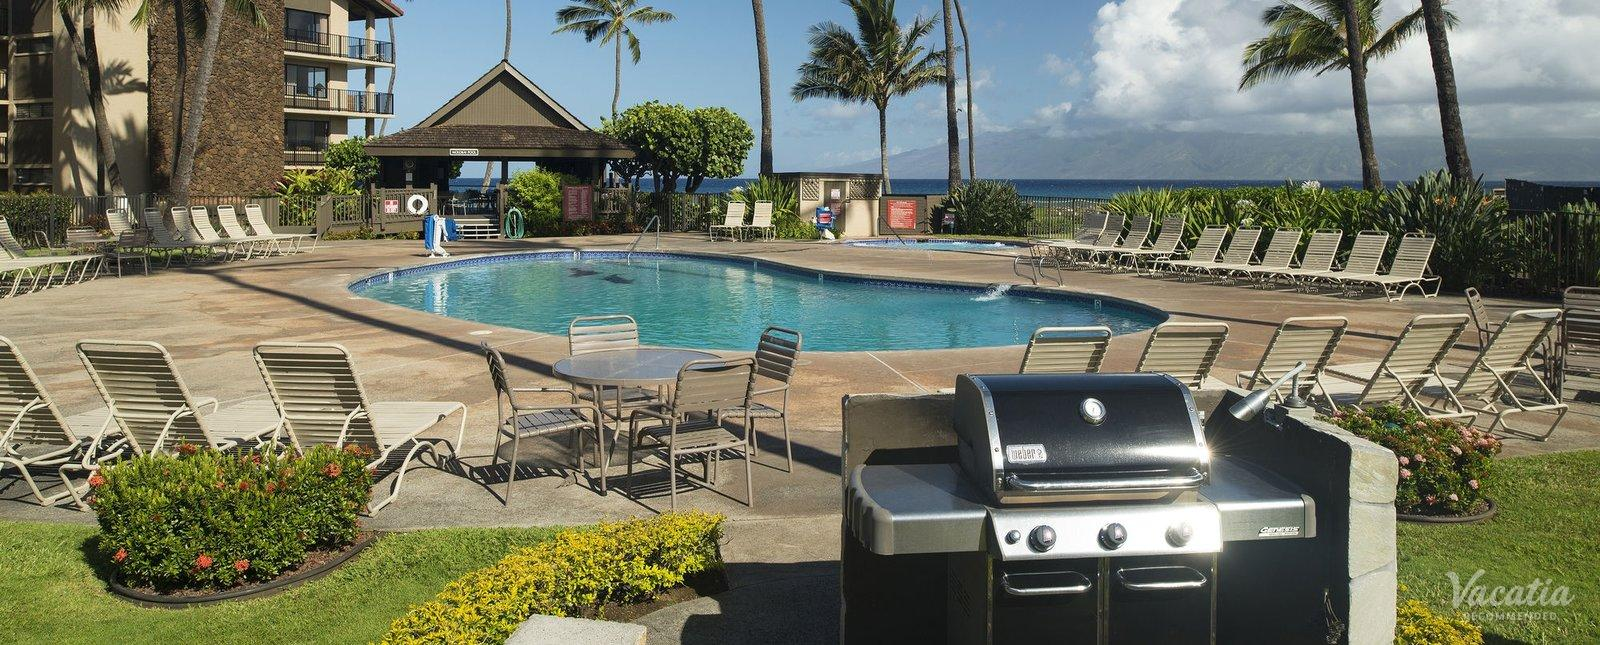 Aston at Papakea Resort pools grills lahaina